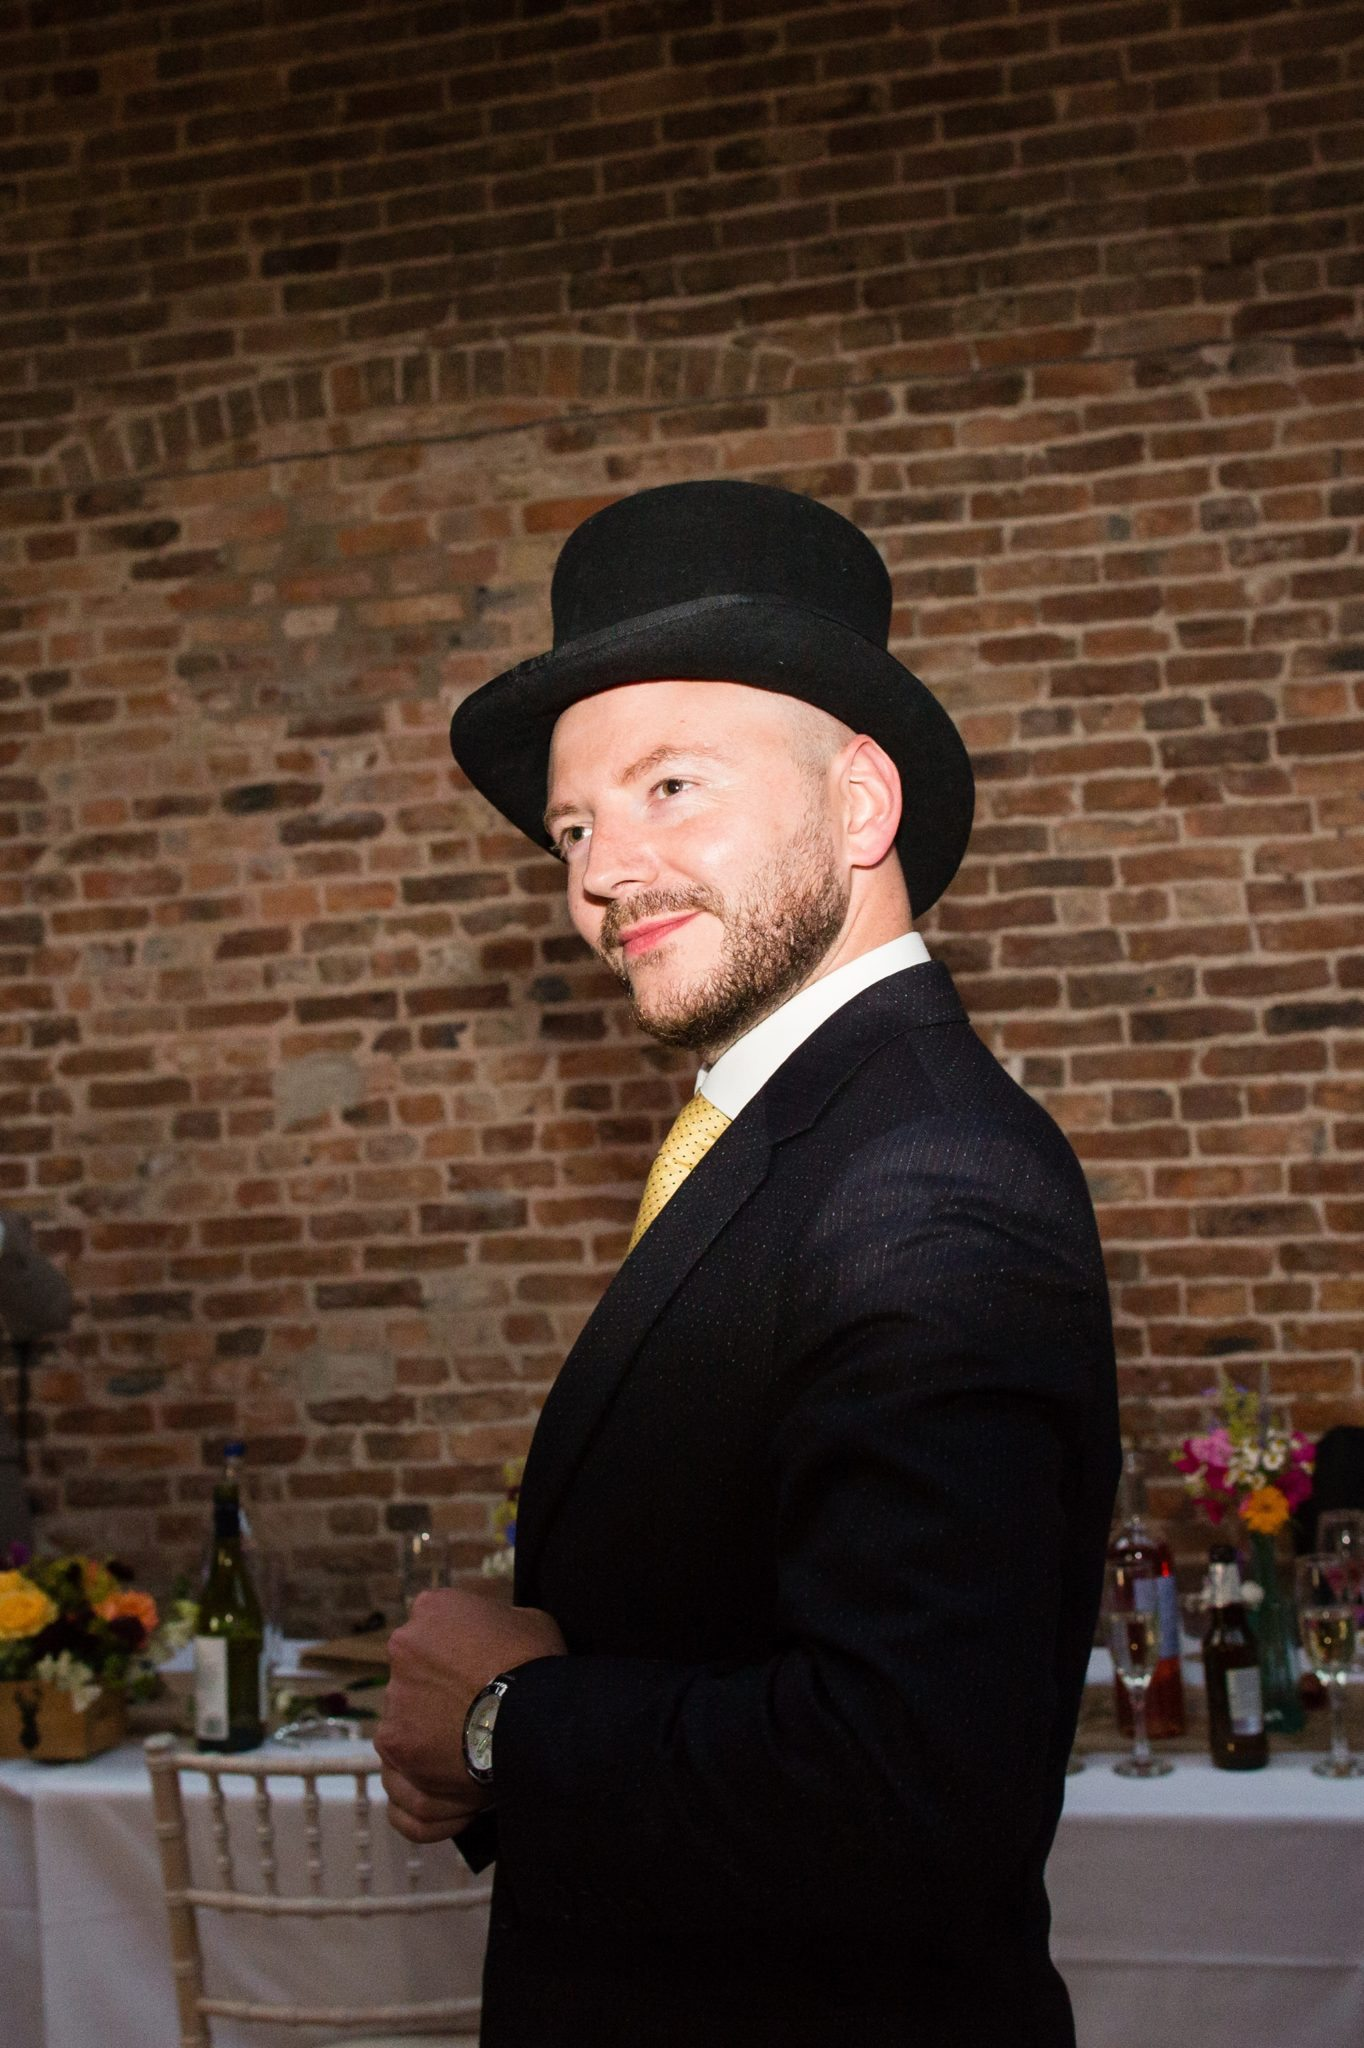 groom with top hat sorting out suit